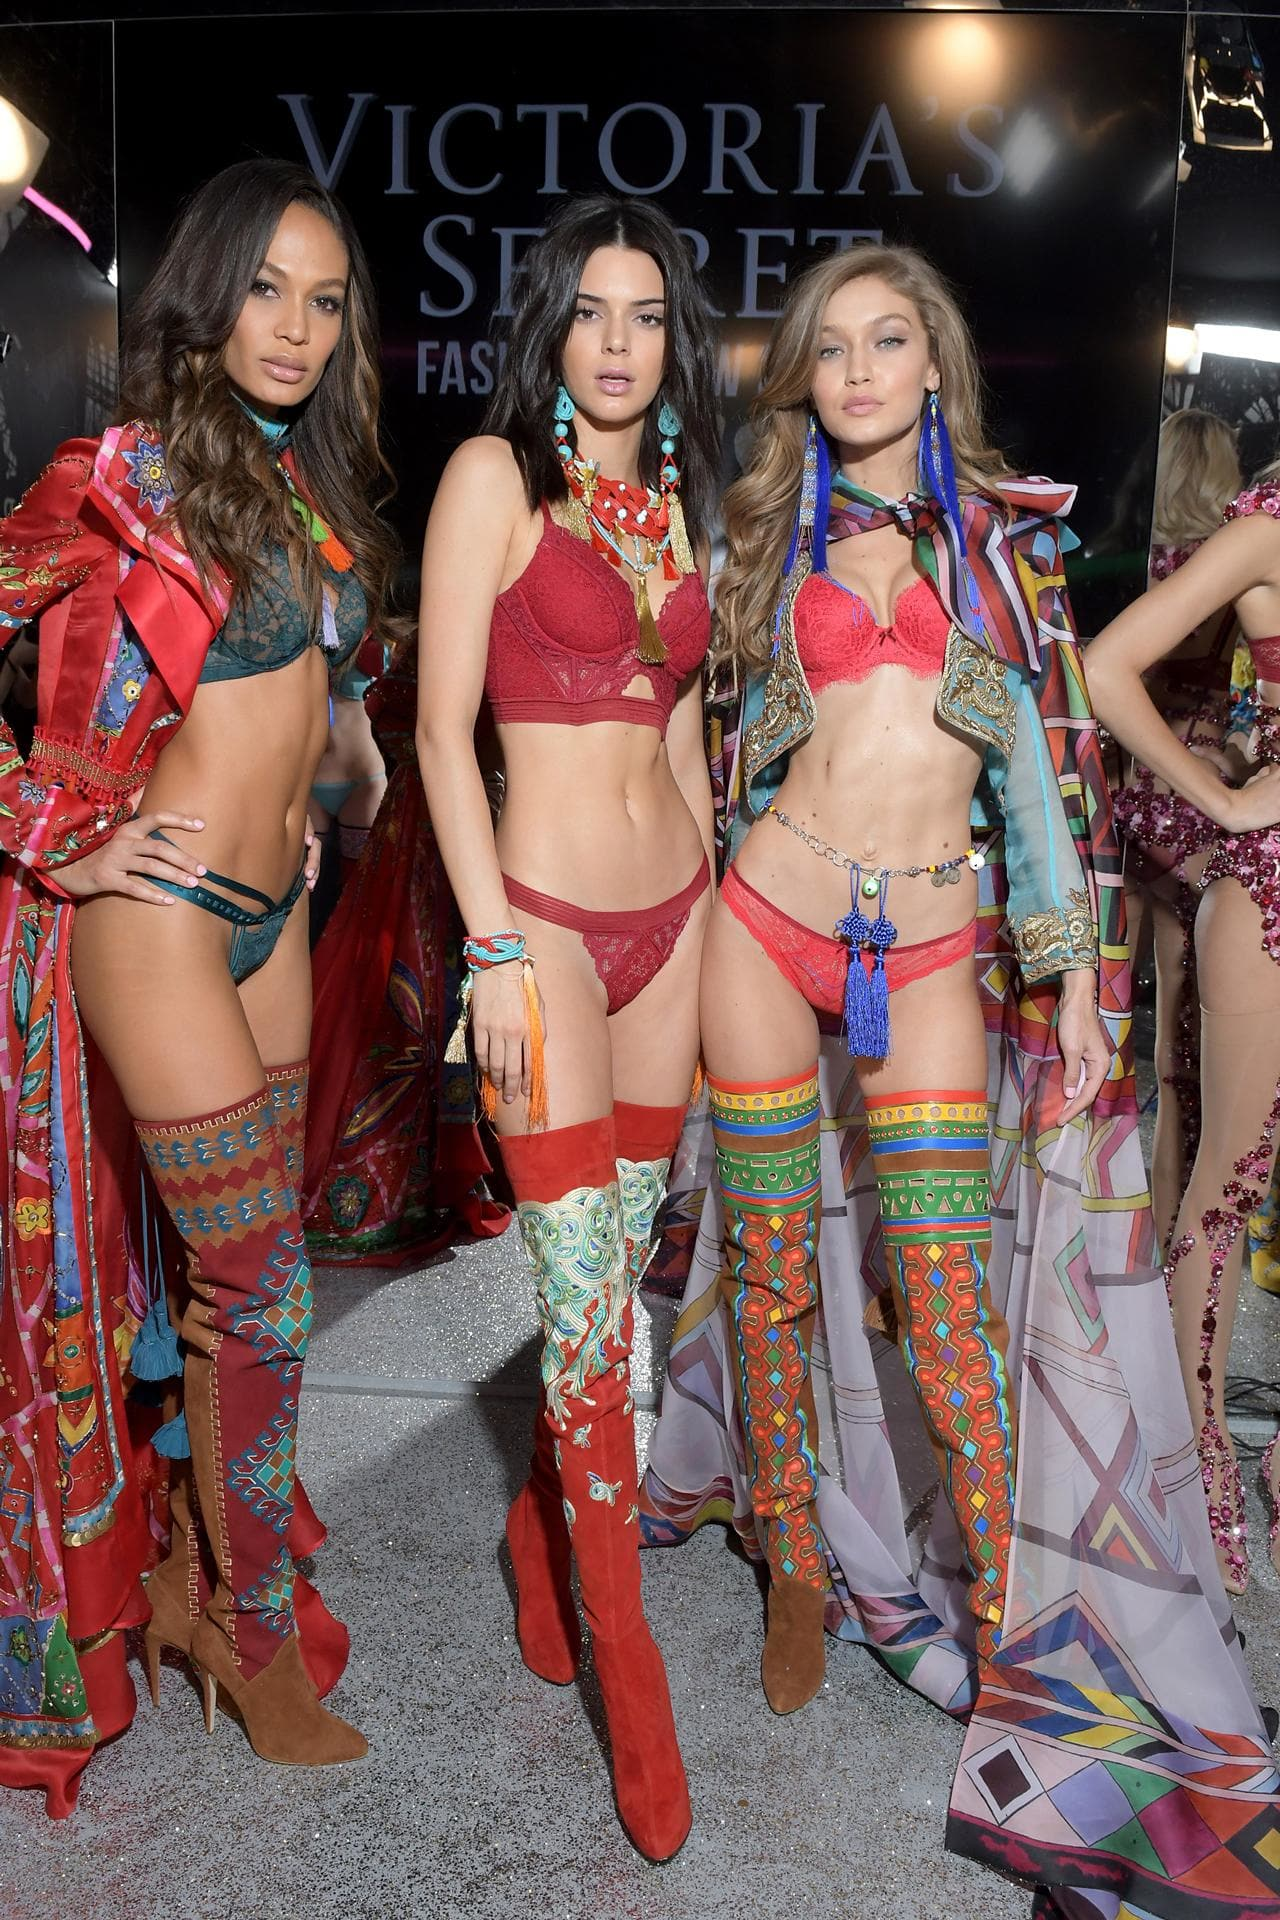 Victoria S Secret S Fall From Power Today S Need For Diversity Stitch